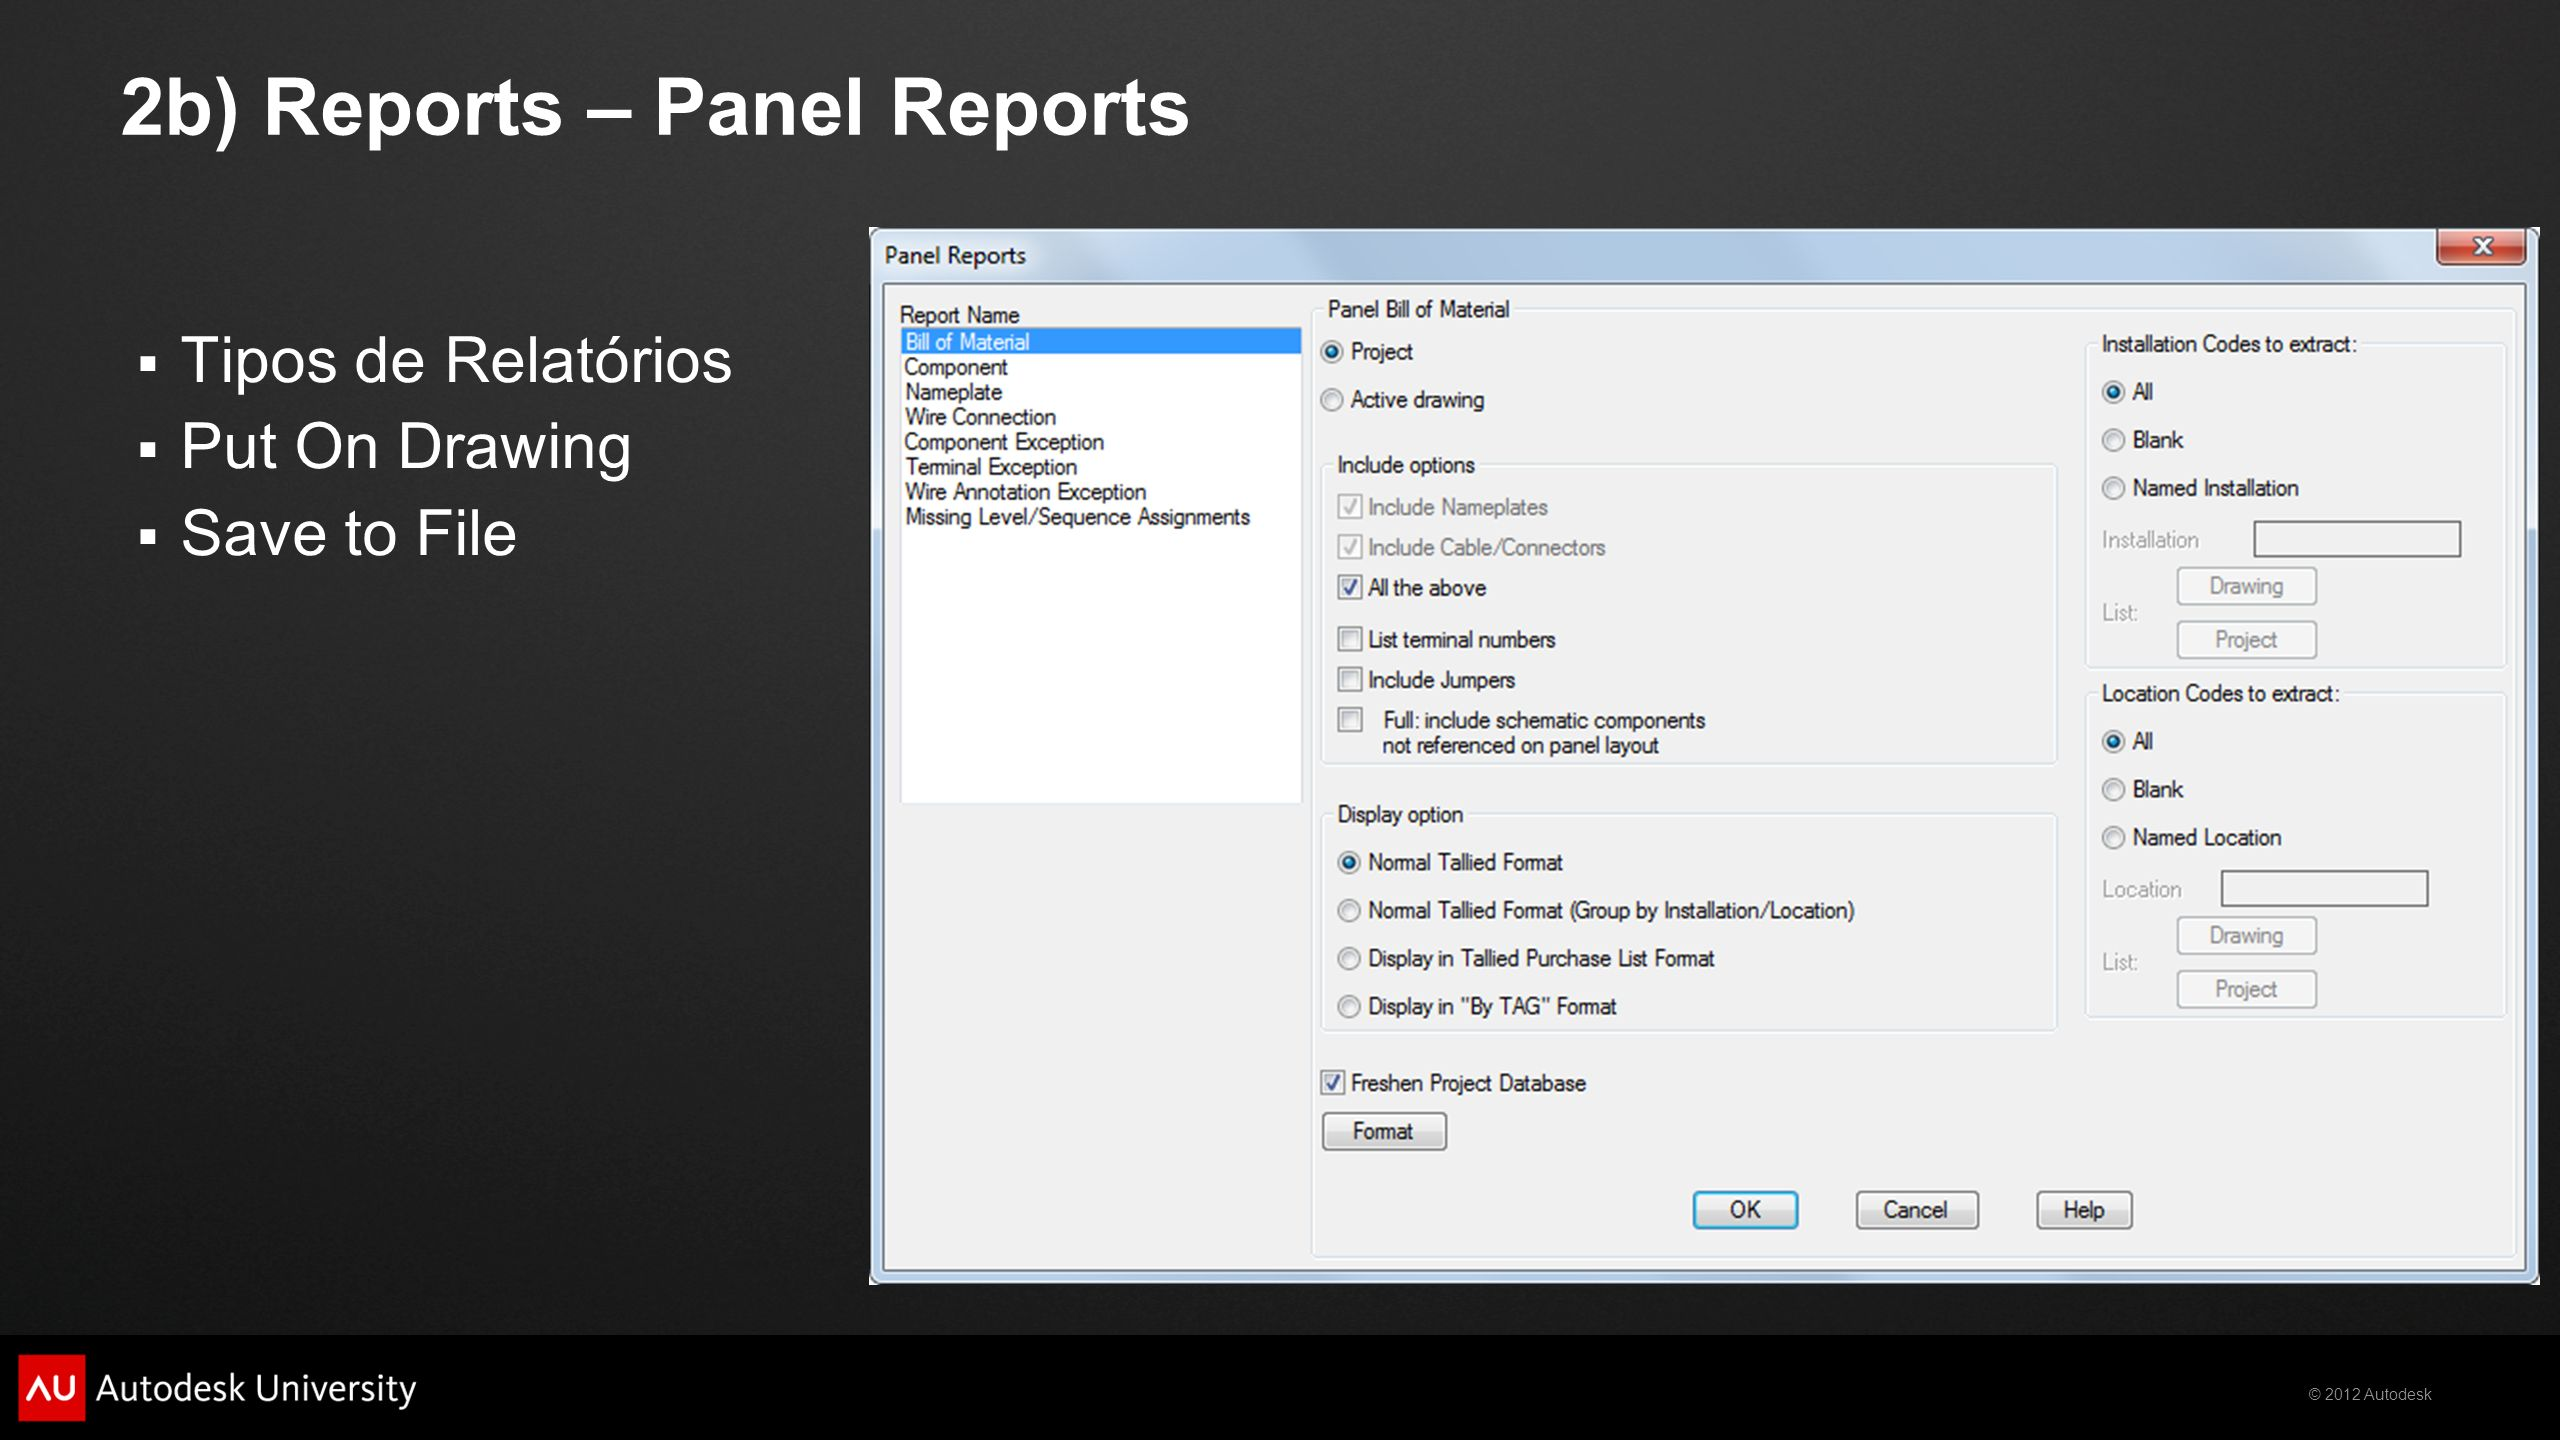 2b) Reports – Panel Reports